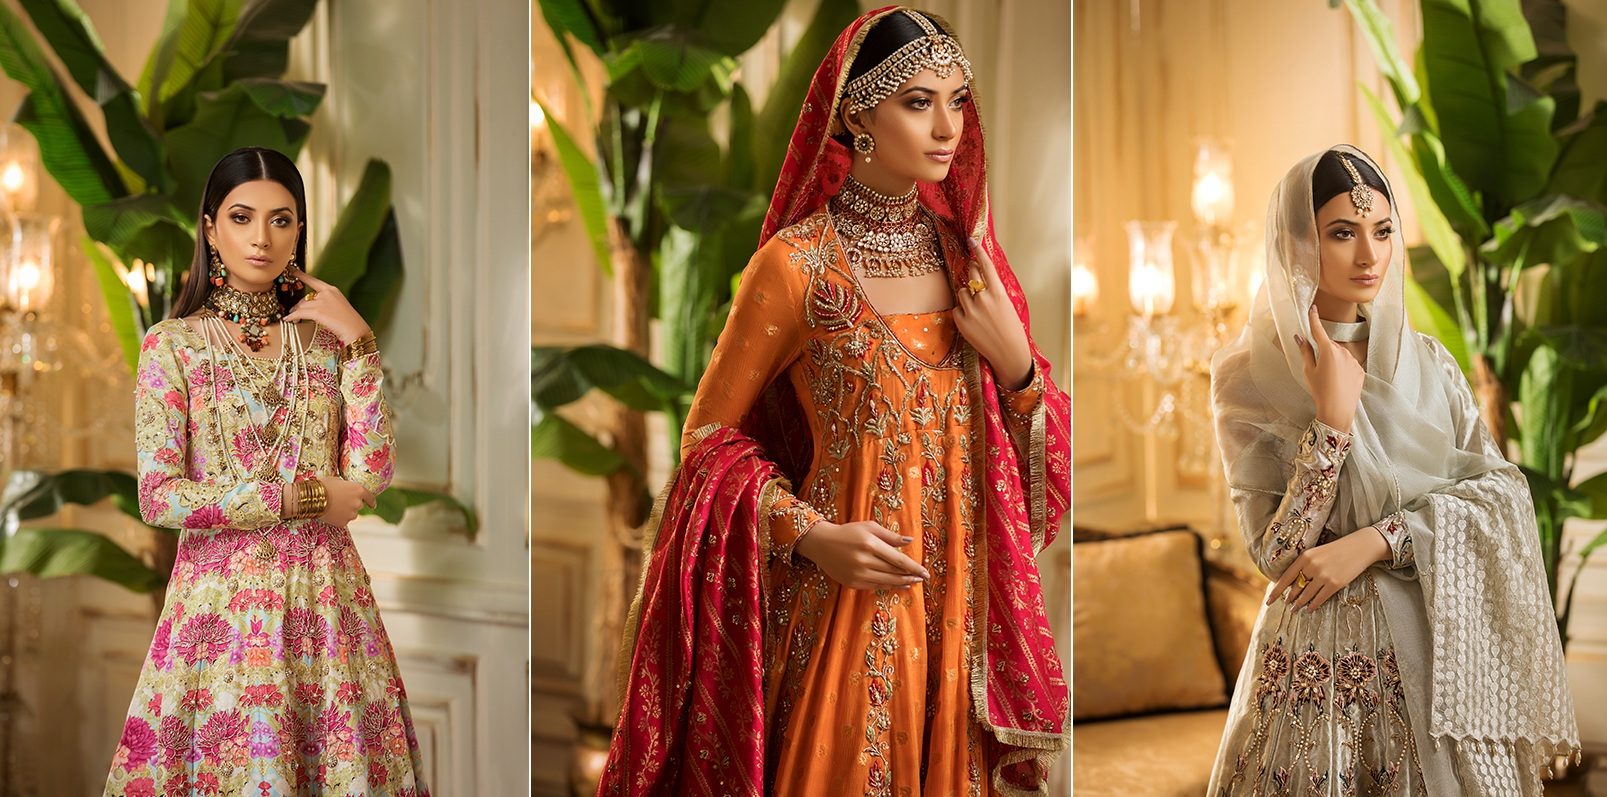 Saphyro Wedding Season Collection 2020 By Morri (1)